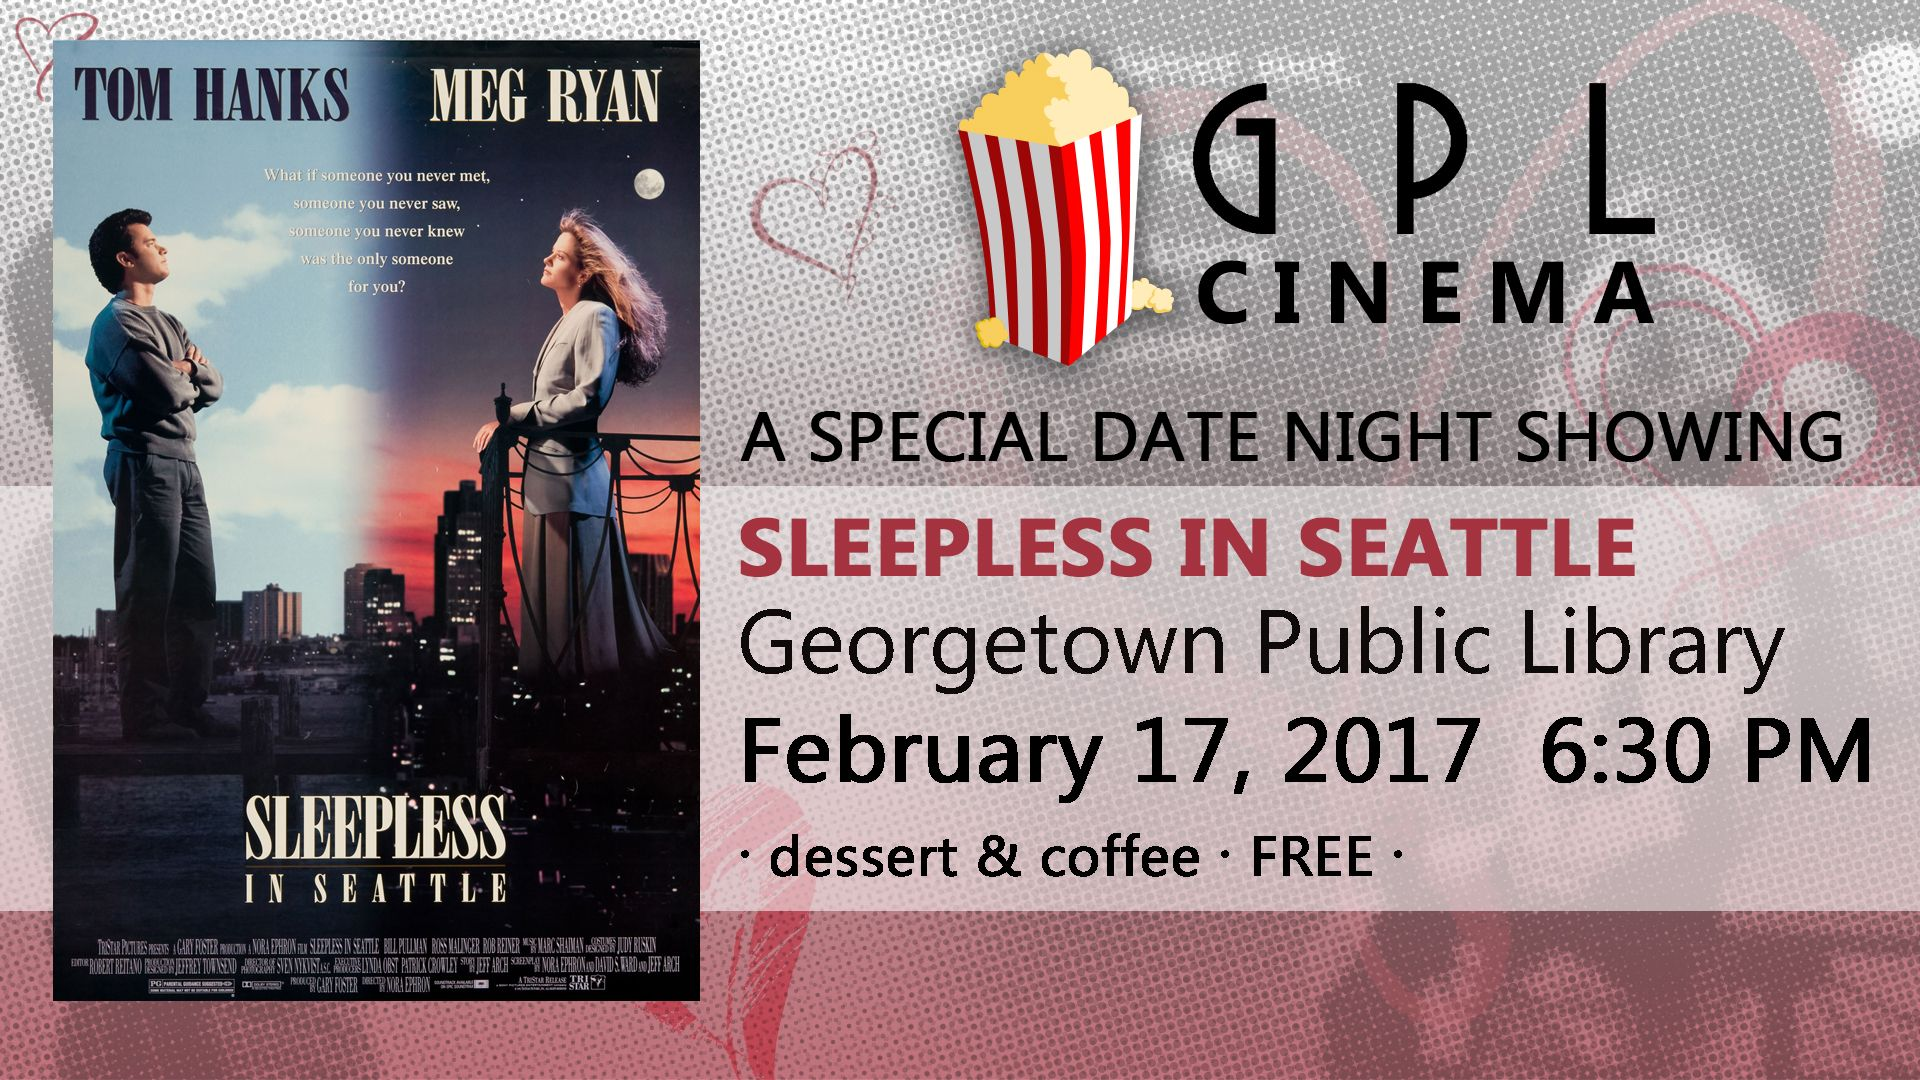 17 February 2017 -  GPL Cinema For this February, we're getting a little romantic, and a little lost! On February 17th at 6:30 PM we're screening Sleepless in Seattle, along with coffee and desserts! Bring your BFF or your significant other and enjoy the show.